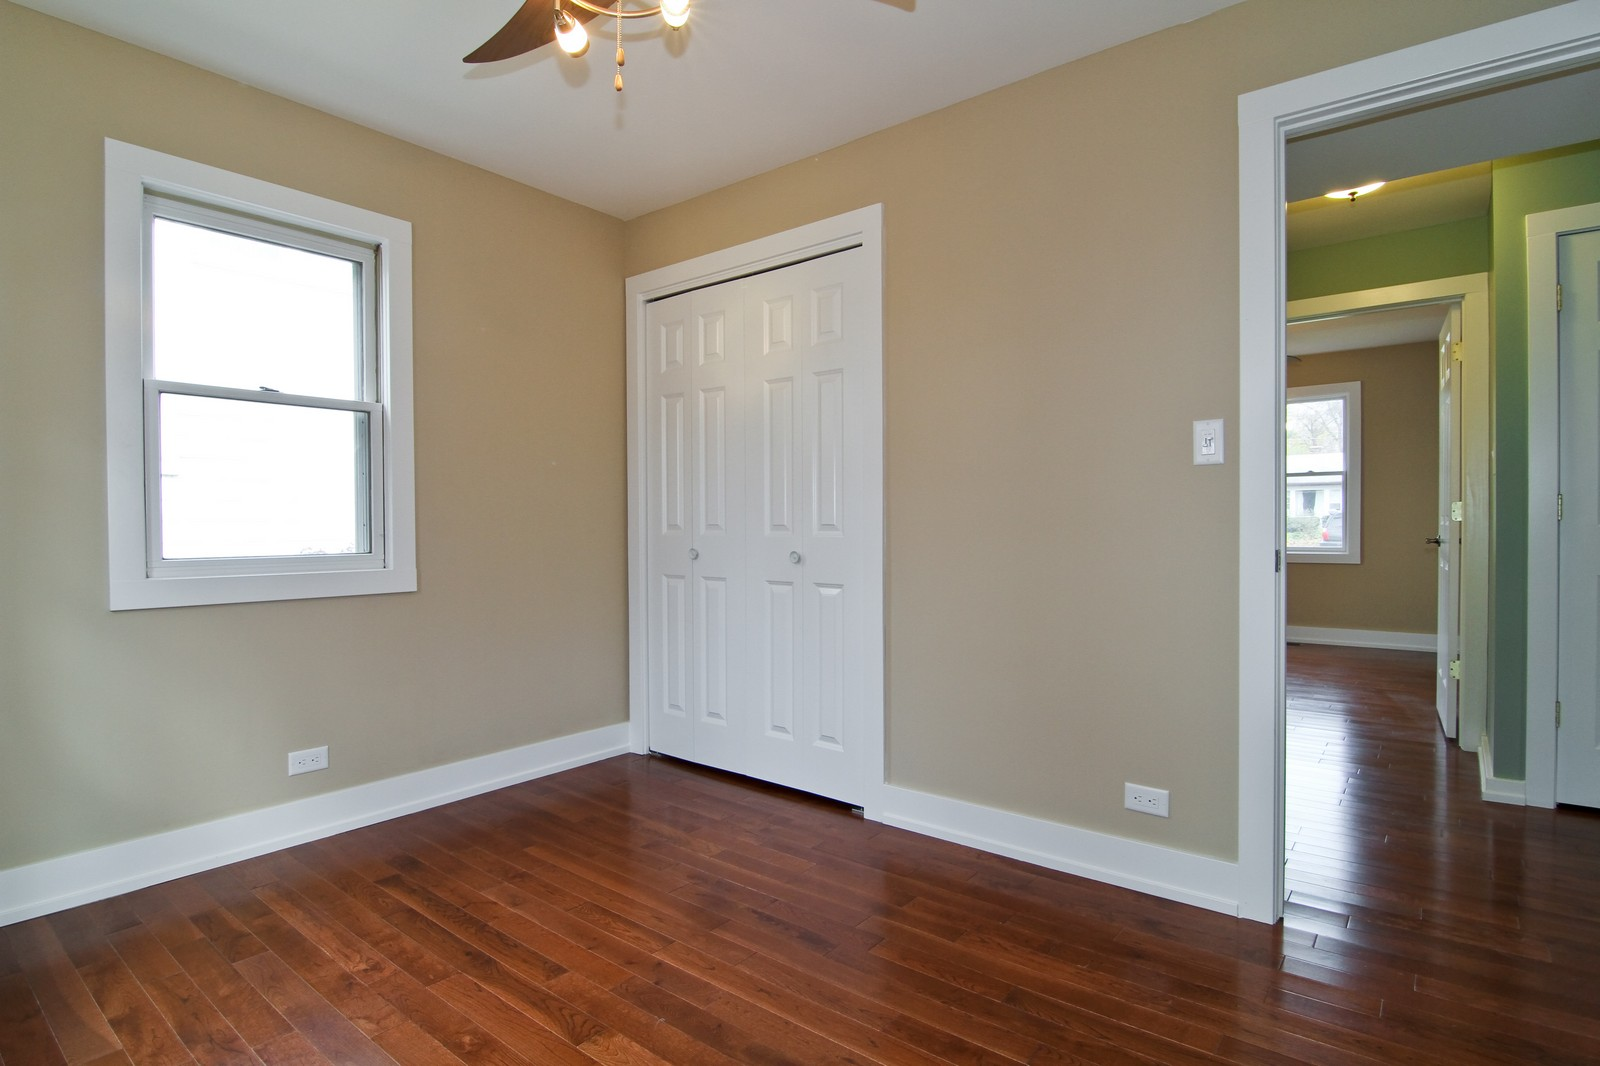 Real Estate Photography - 406 N Garfield St, Lombard, IL, 60148 - 2nd Bedroom